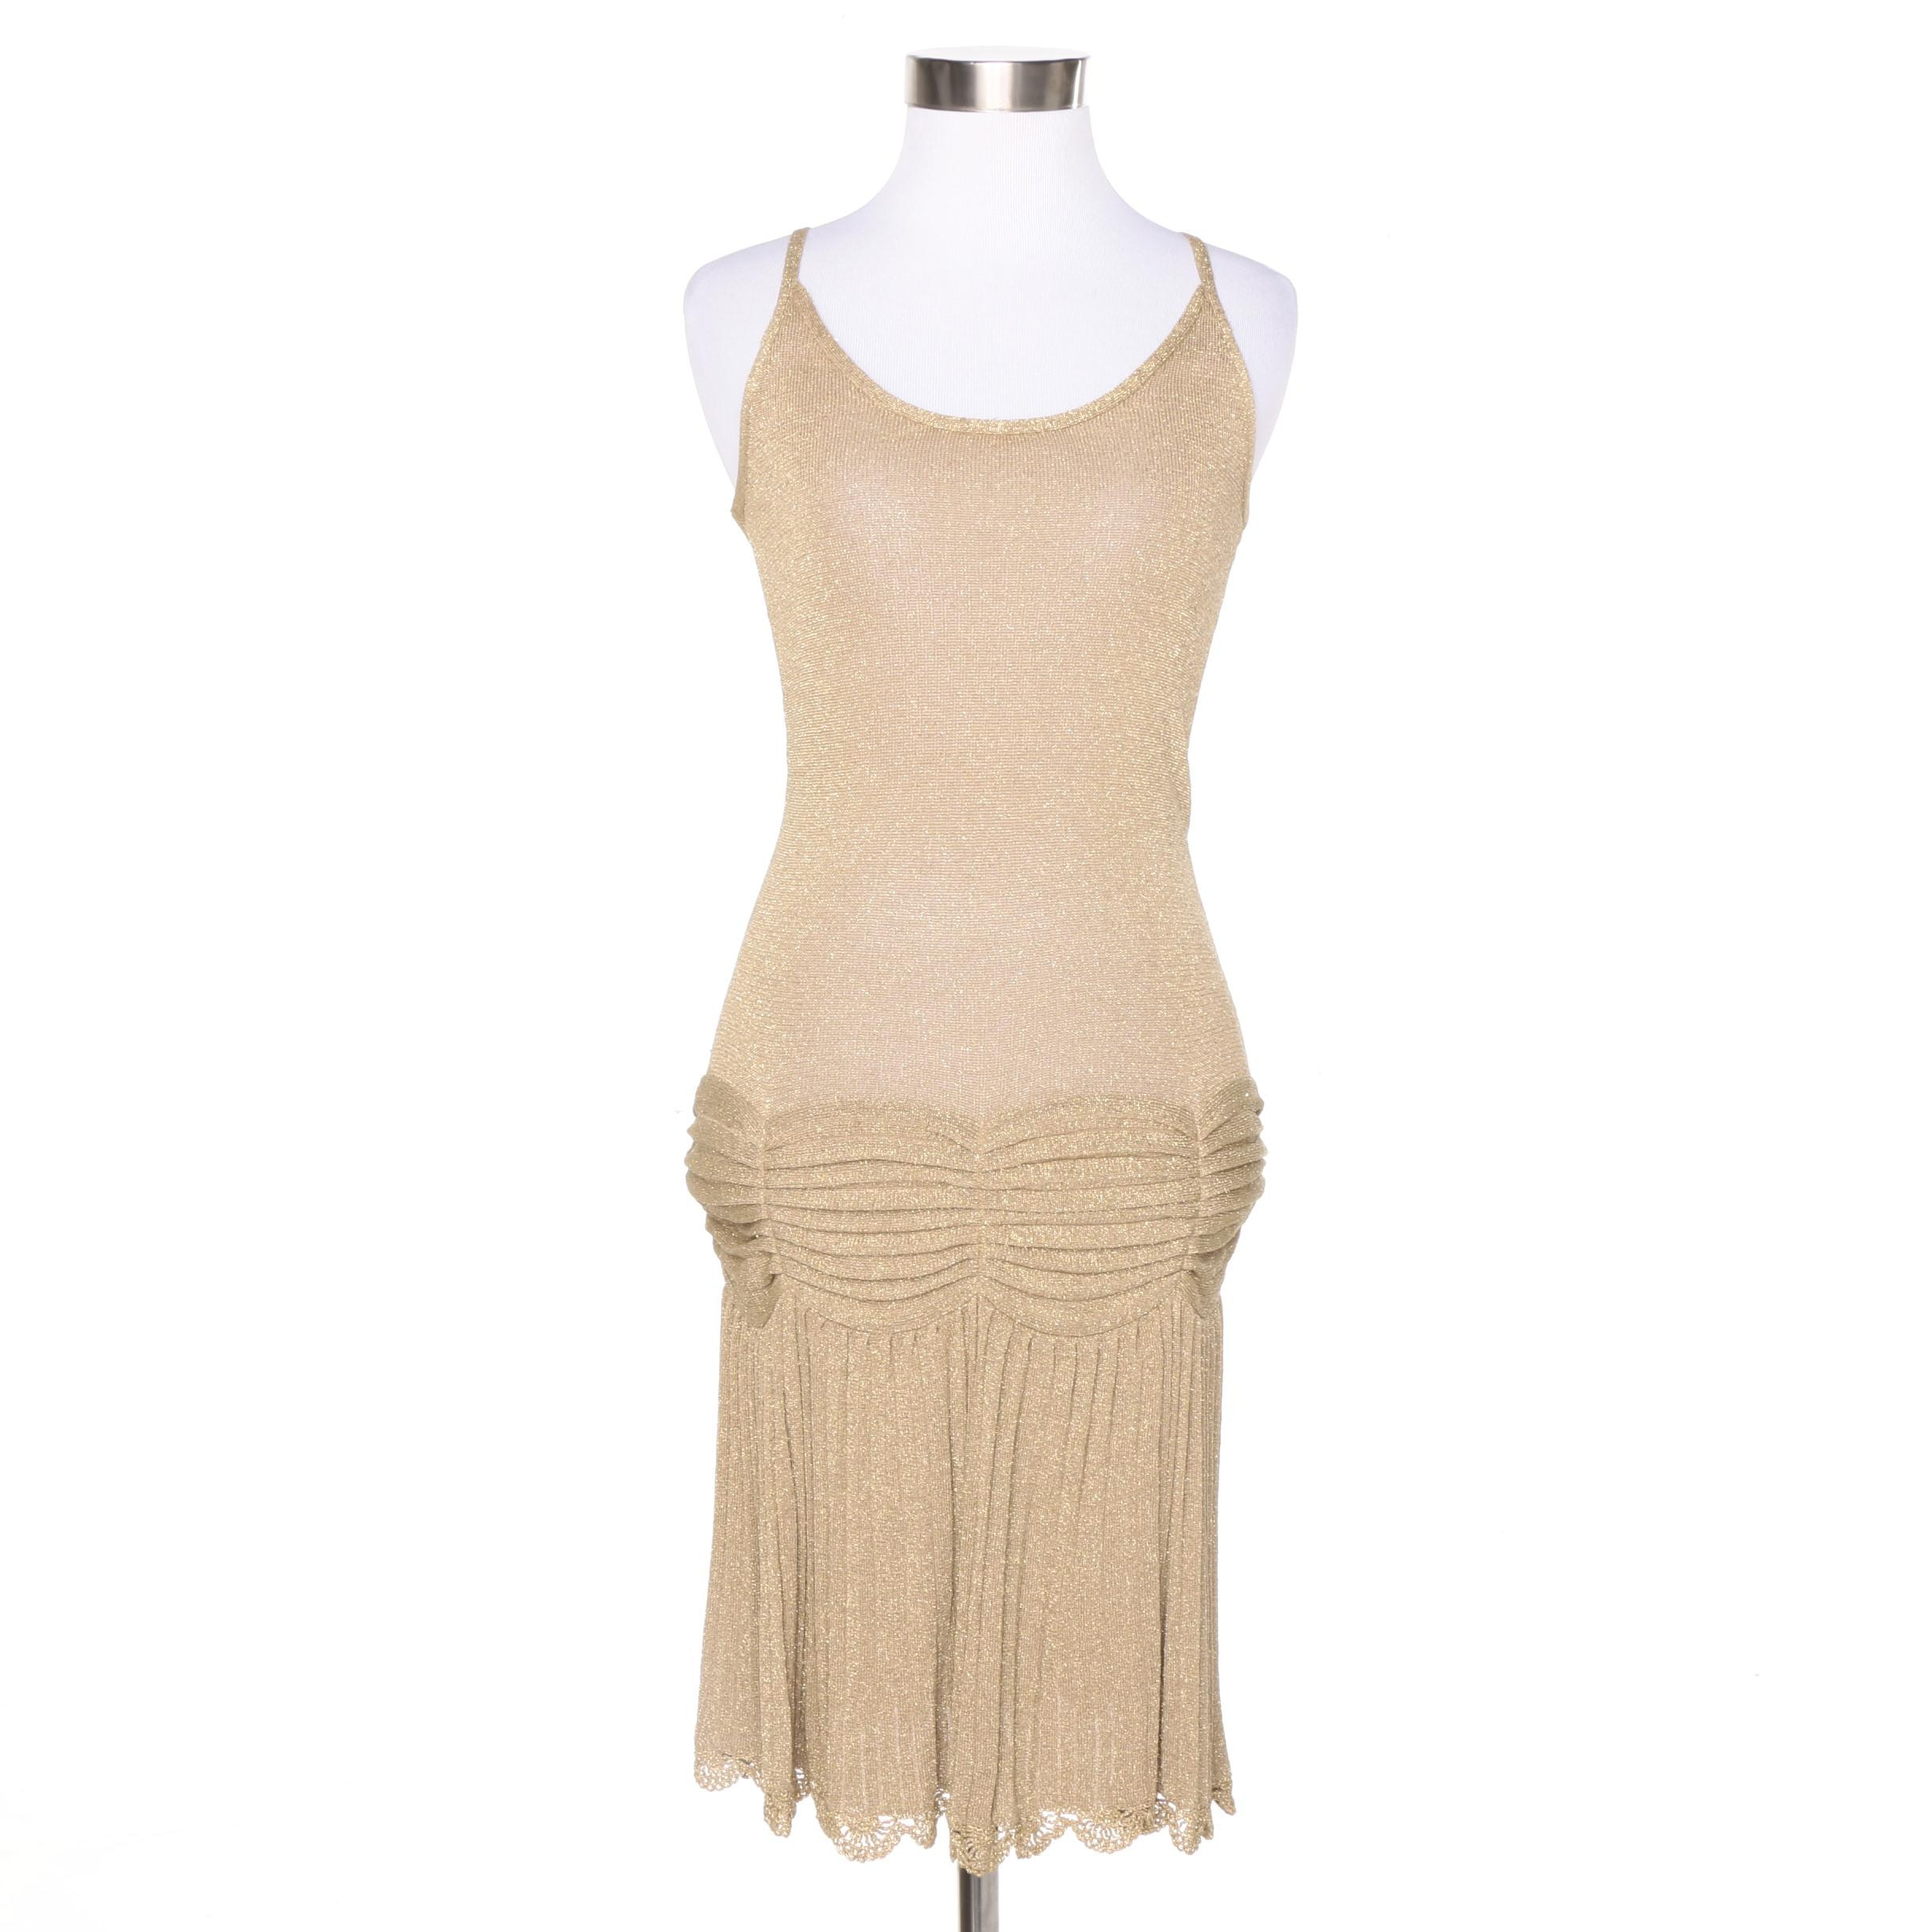 BCBG Max Azria Gold Knit Dress